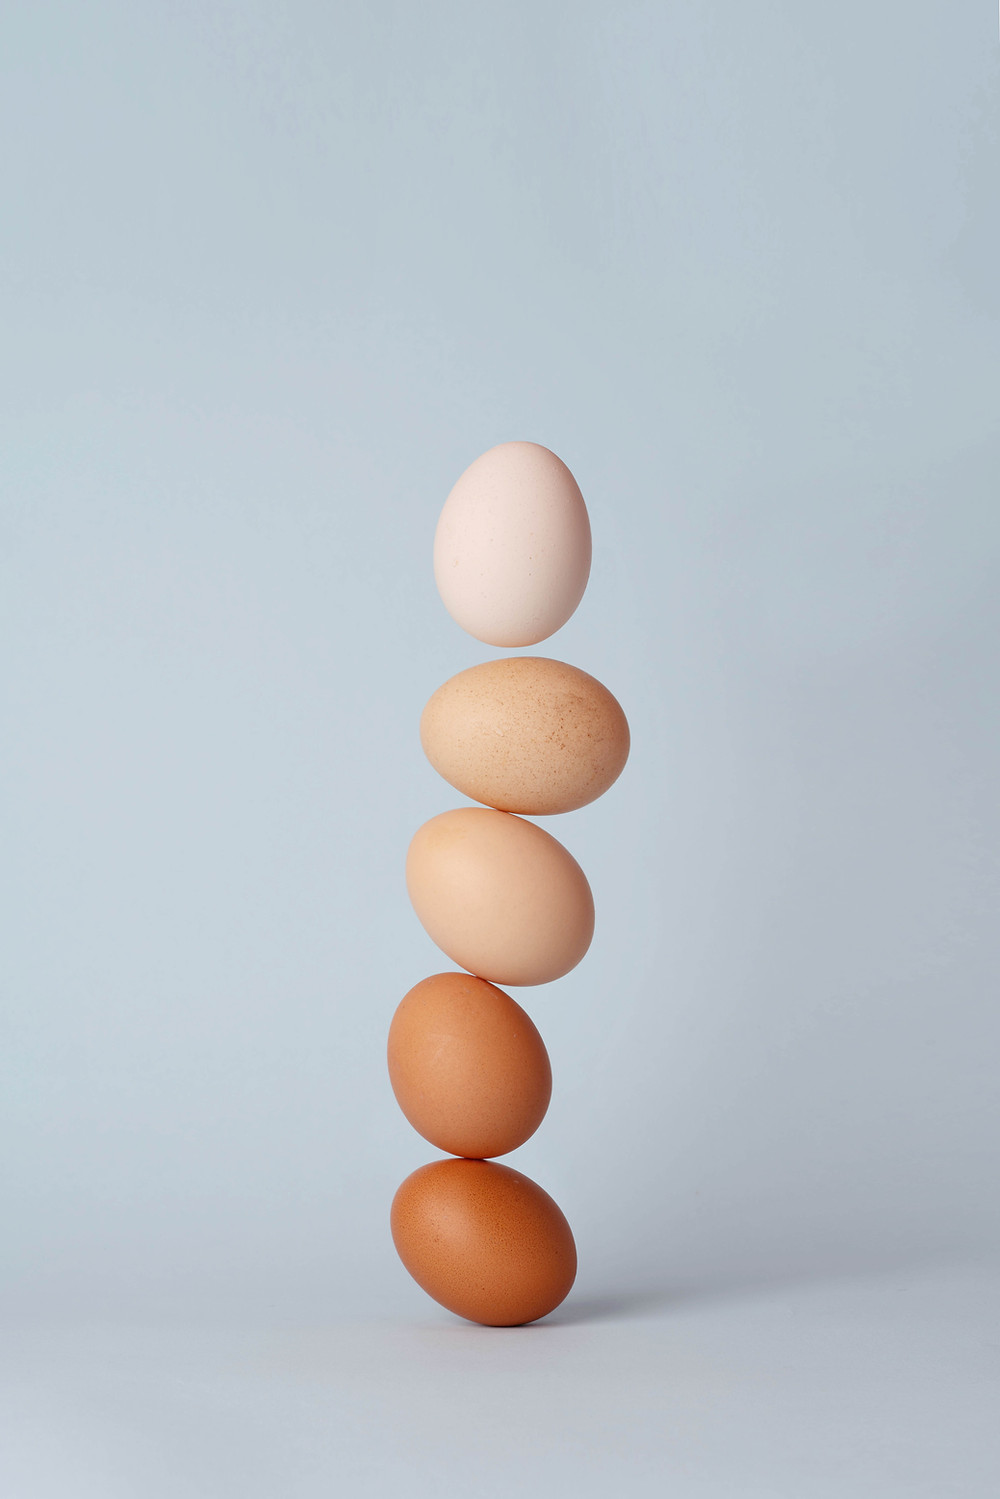 A tower of five eggs balancing precariously.